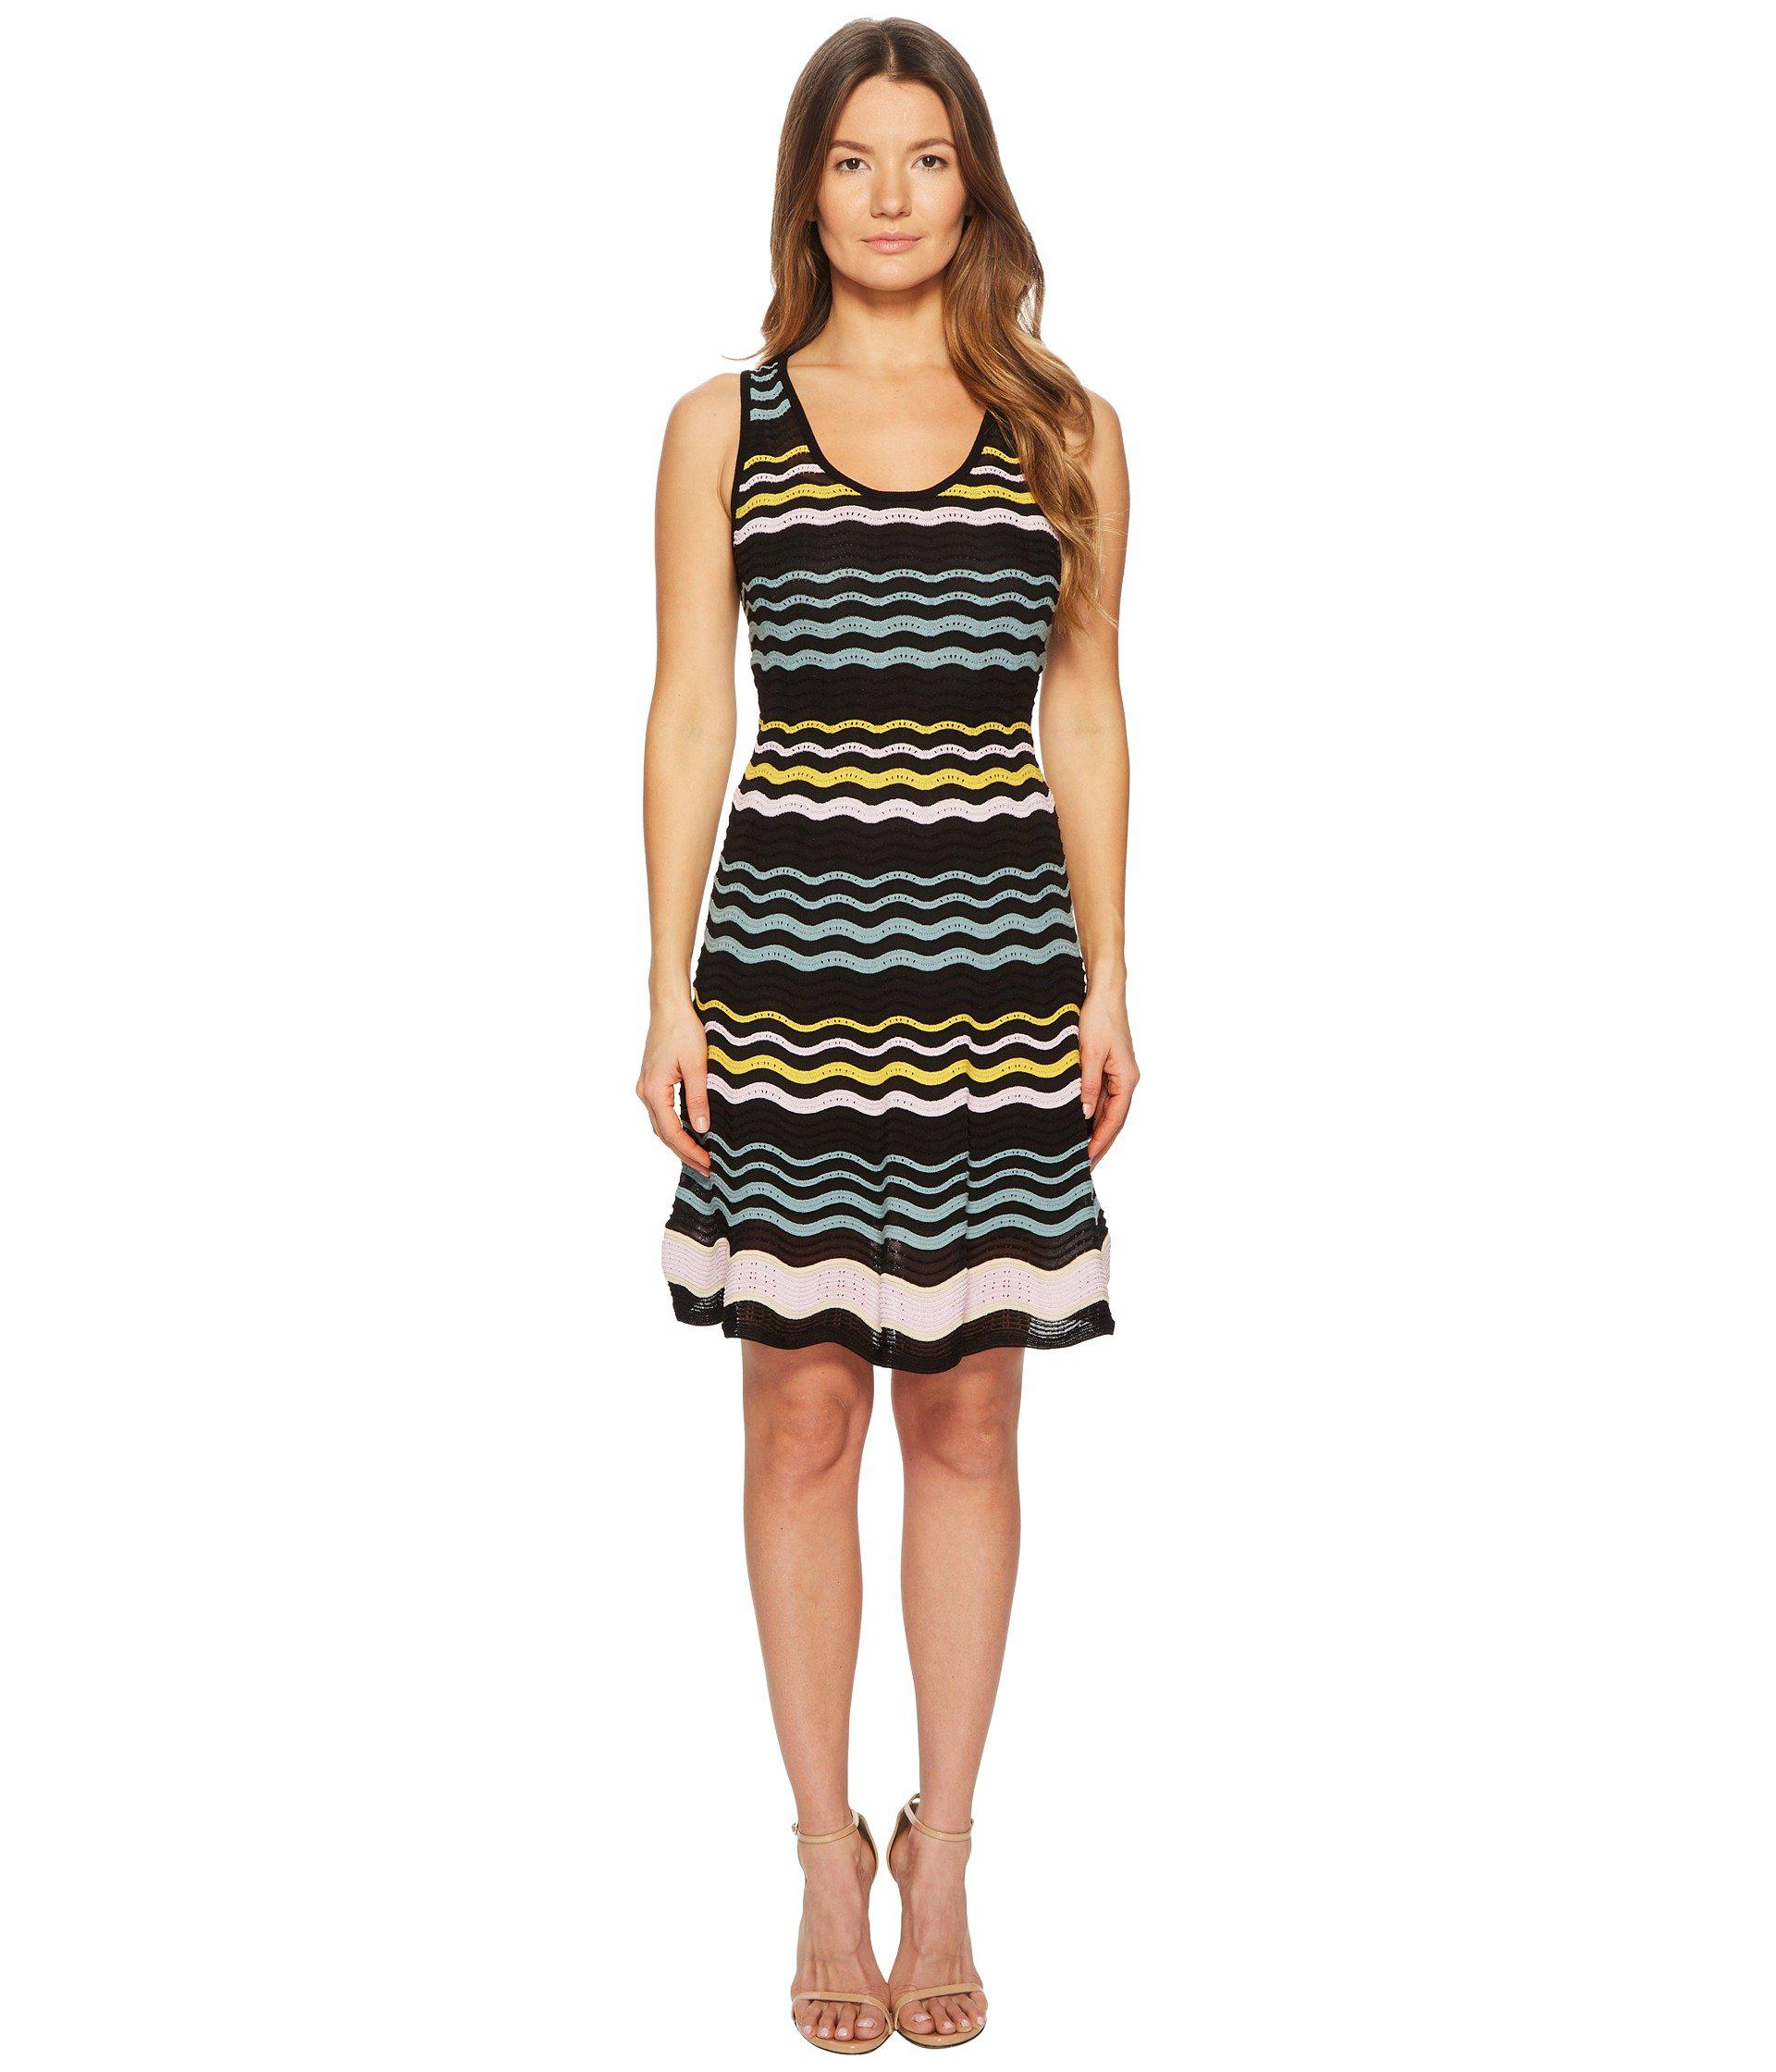 d09369deca8872 Lyst - M Missoni Color Block Ripple Dress (black) Women s Dress in ...